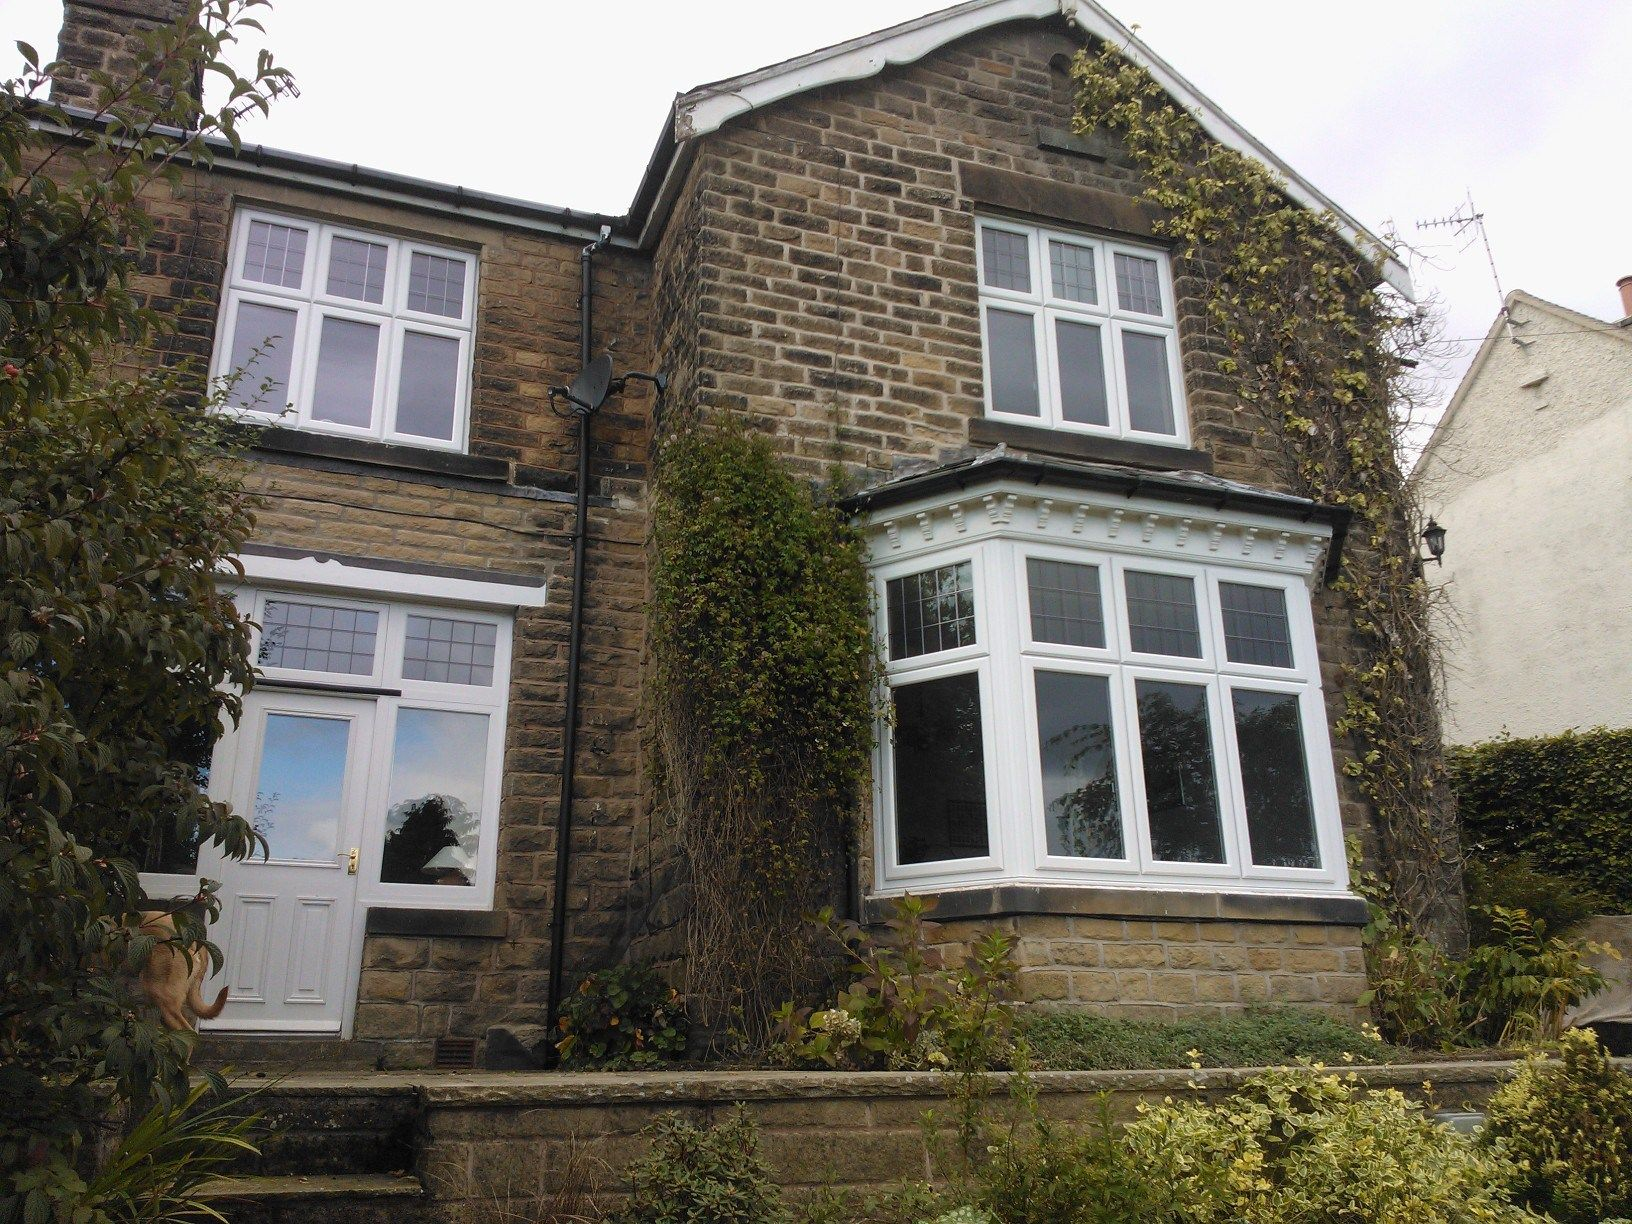 Lifestyle double and triple glazed windows are